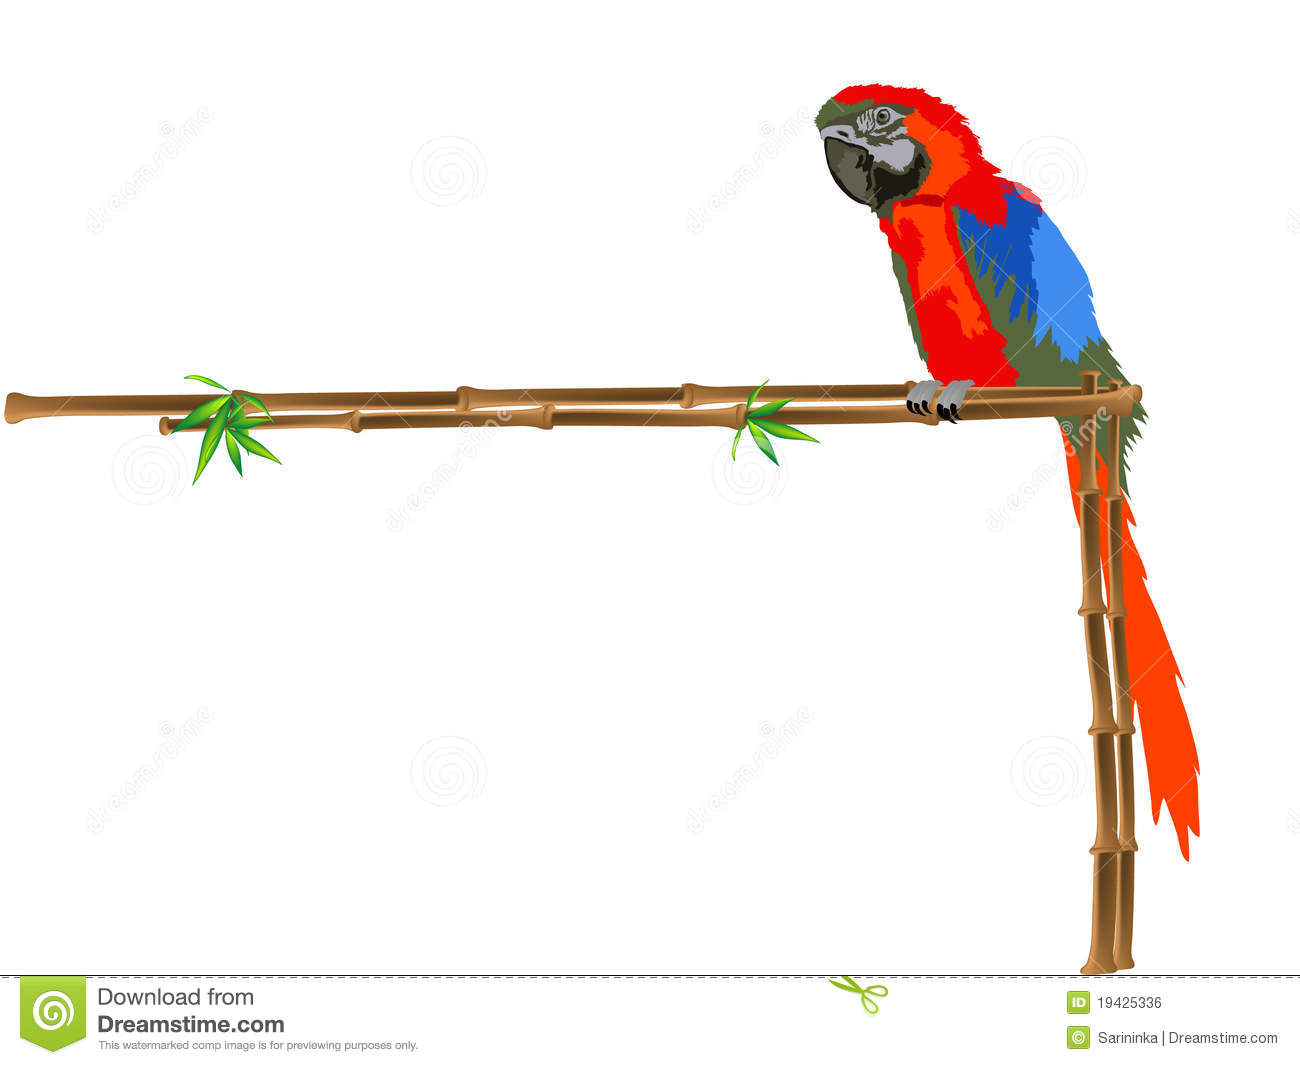 Parrot Royalty Free Stock Image - Image: 19425336